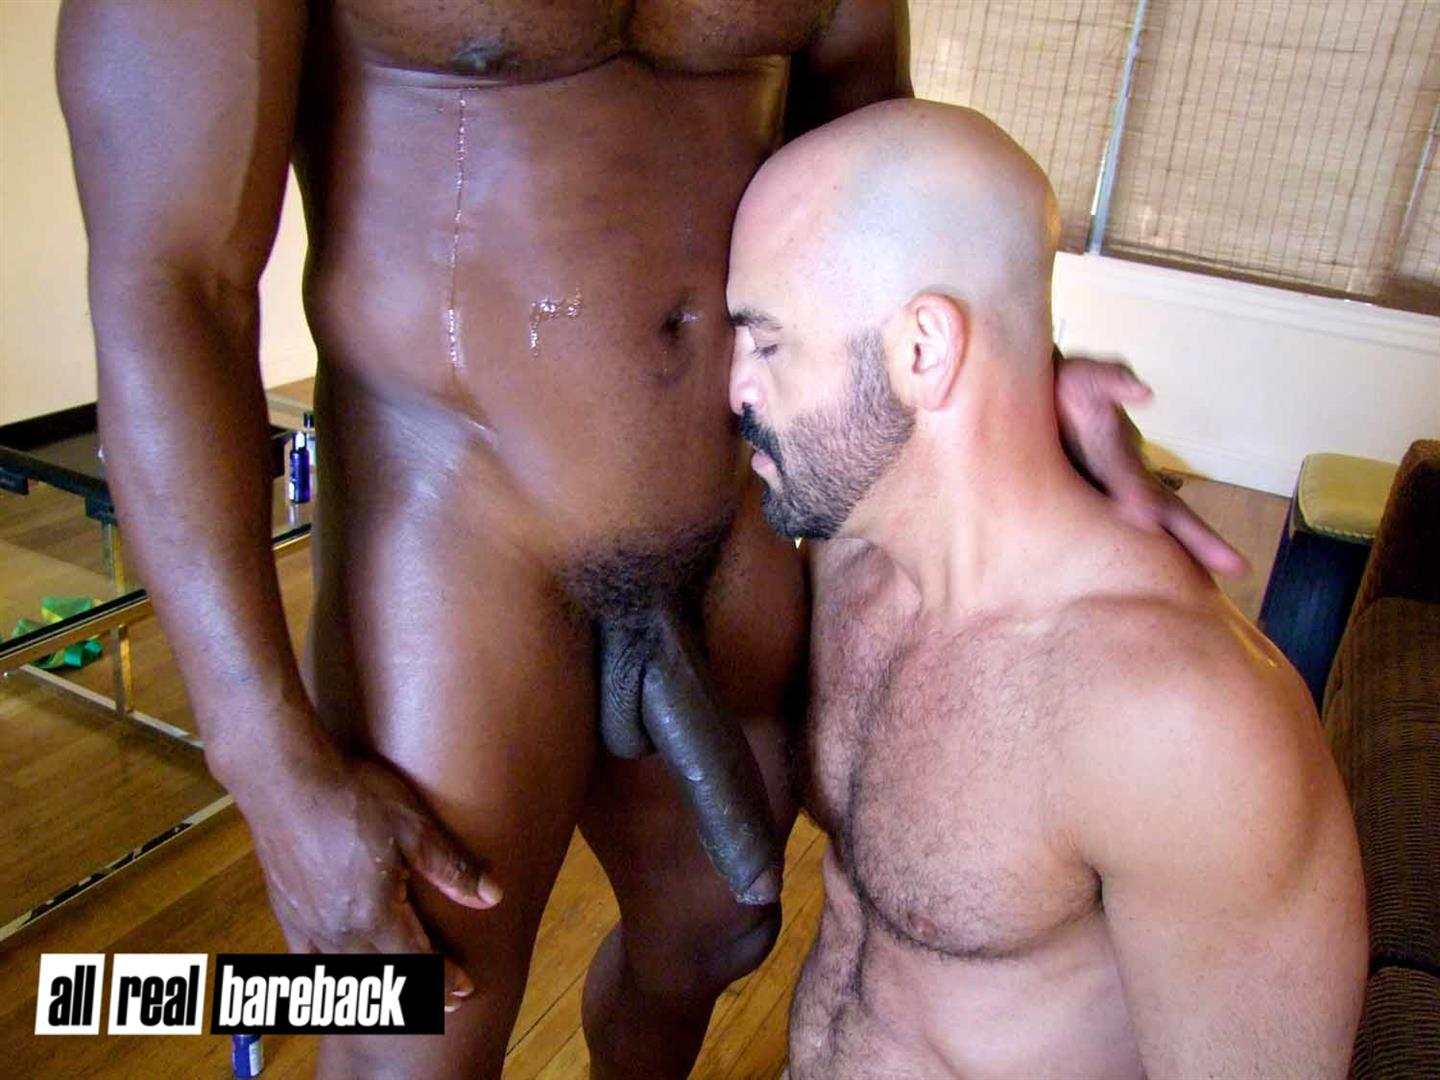 All-Real-Bareback-Cutler-X-and-Adam-Russo-Real-Life-Boyfriends-Barebacking-Amateur-Gay-Porn-15 Cutler X Films His First Ever Bareback Video With Real Life BF Adam Russo